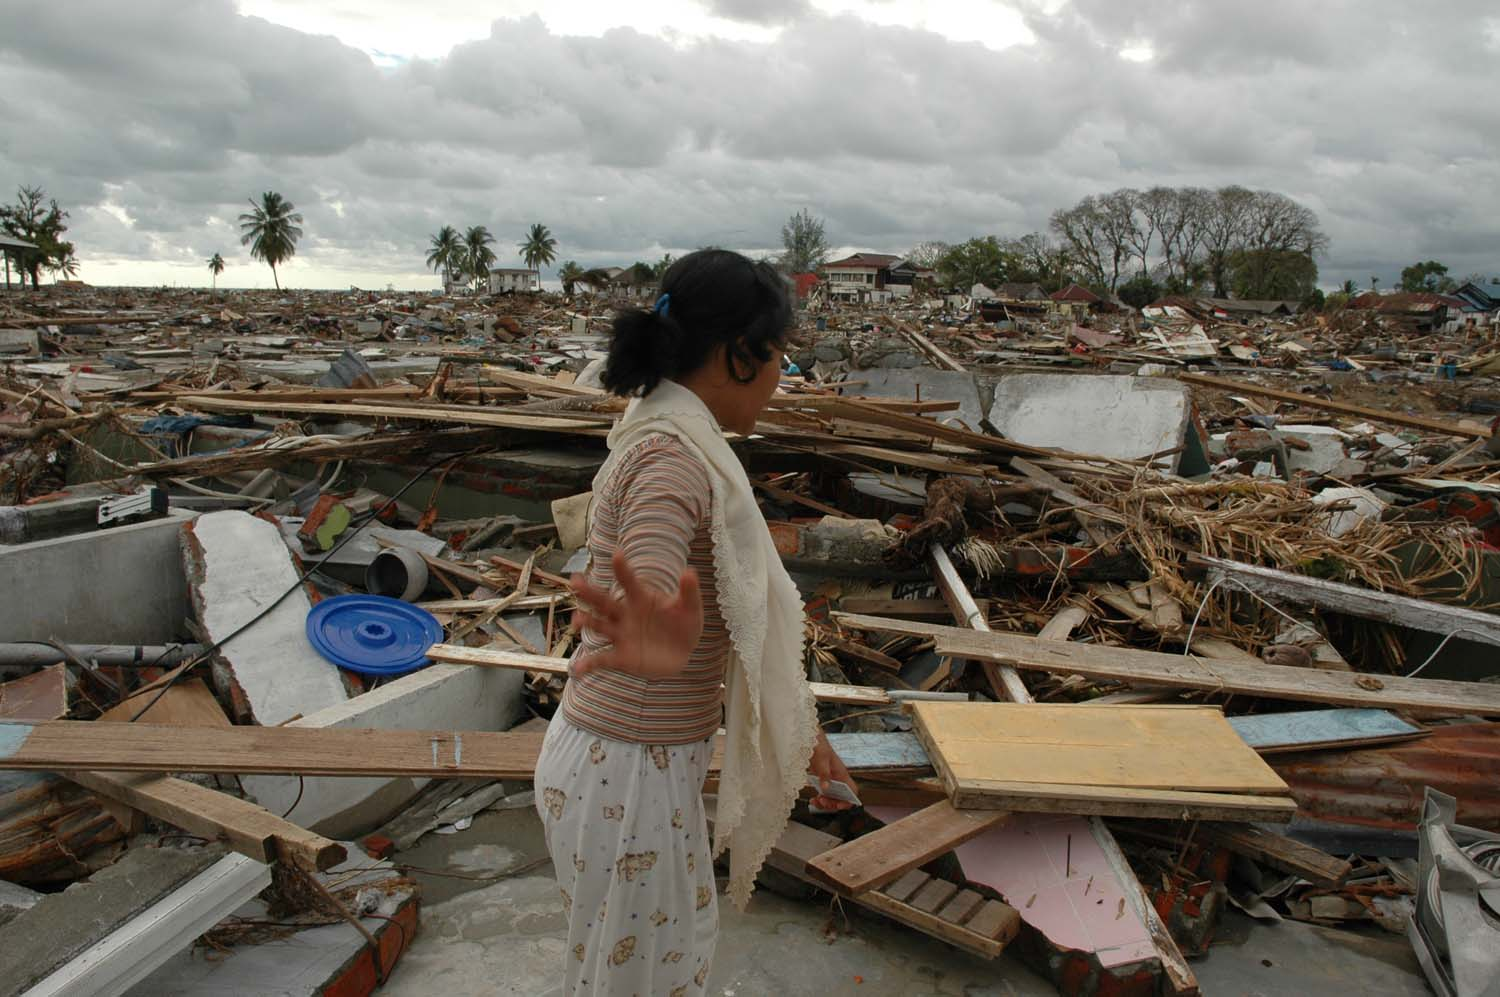 A student surveys the remains of her house in a village in West Aceh after the 2004 Indian Ocean tsunami. The student survived because she had left the village for a holiday, but she lost 40 members of her family